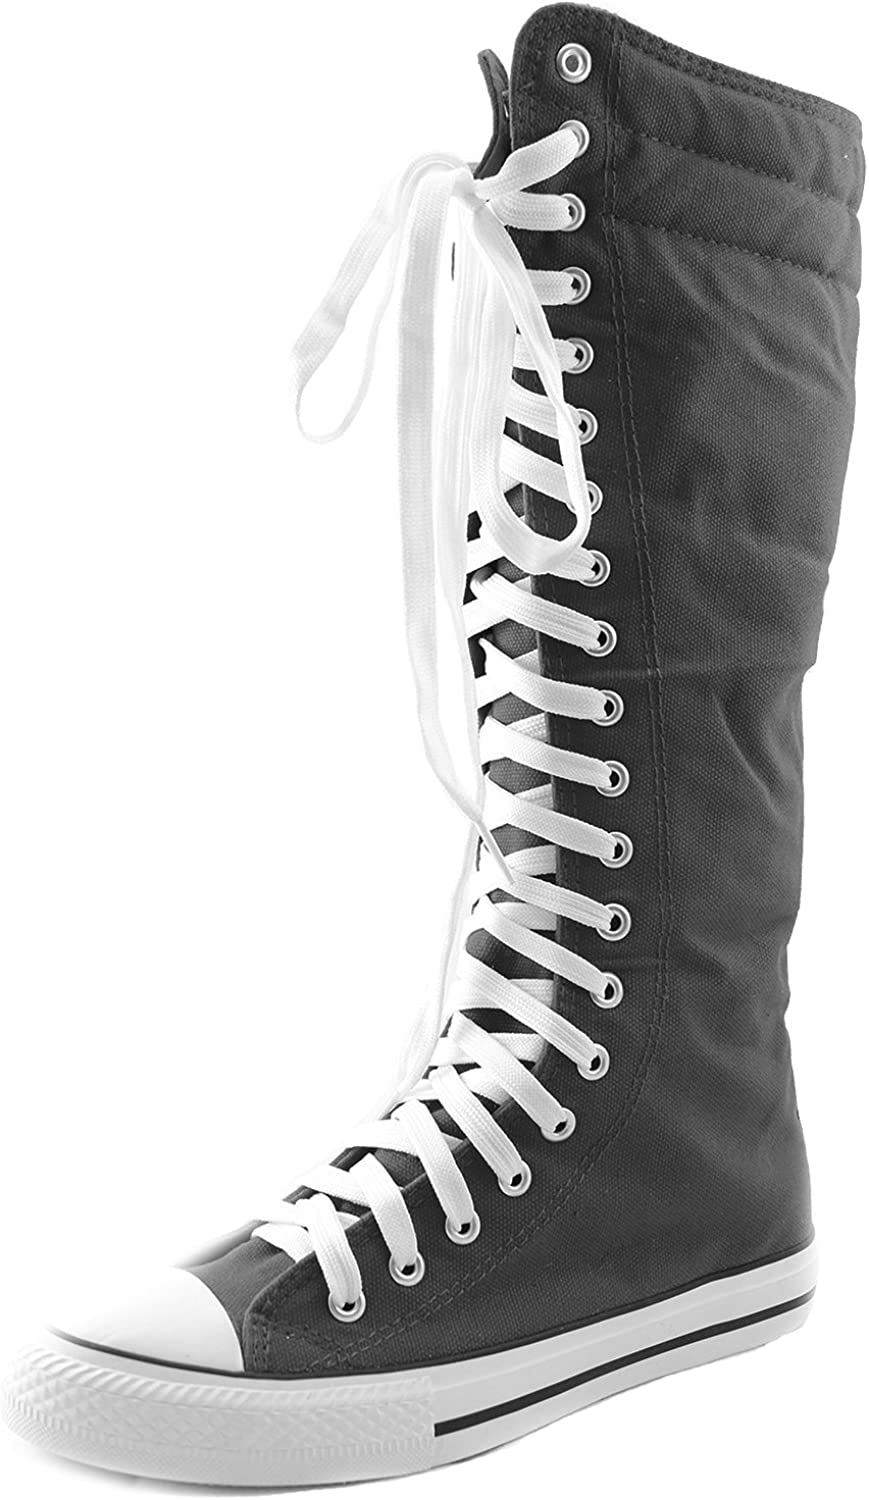 Dailyshoes Women's Canvas Mid Calf Tall Boots Casual Sneaker Punk Flat, Sky bluee